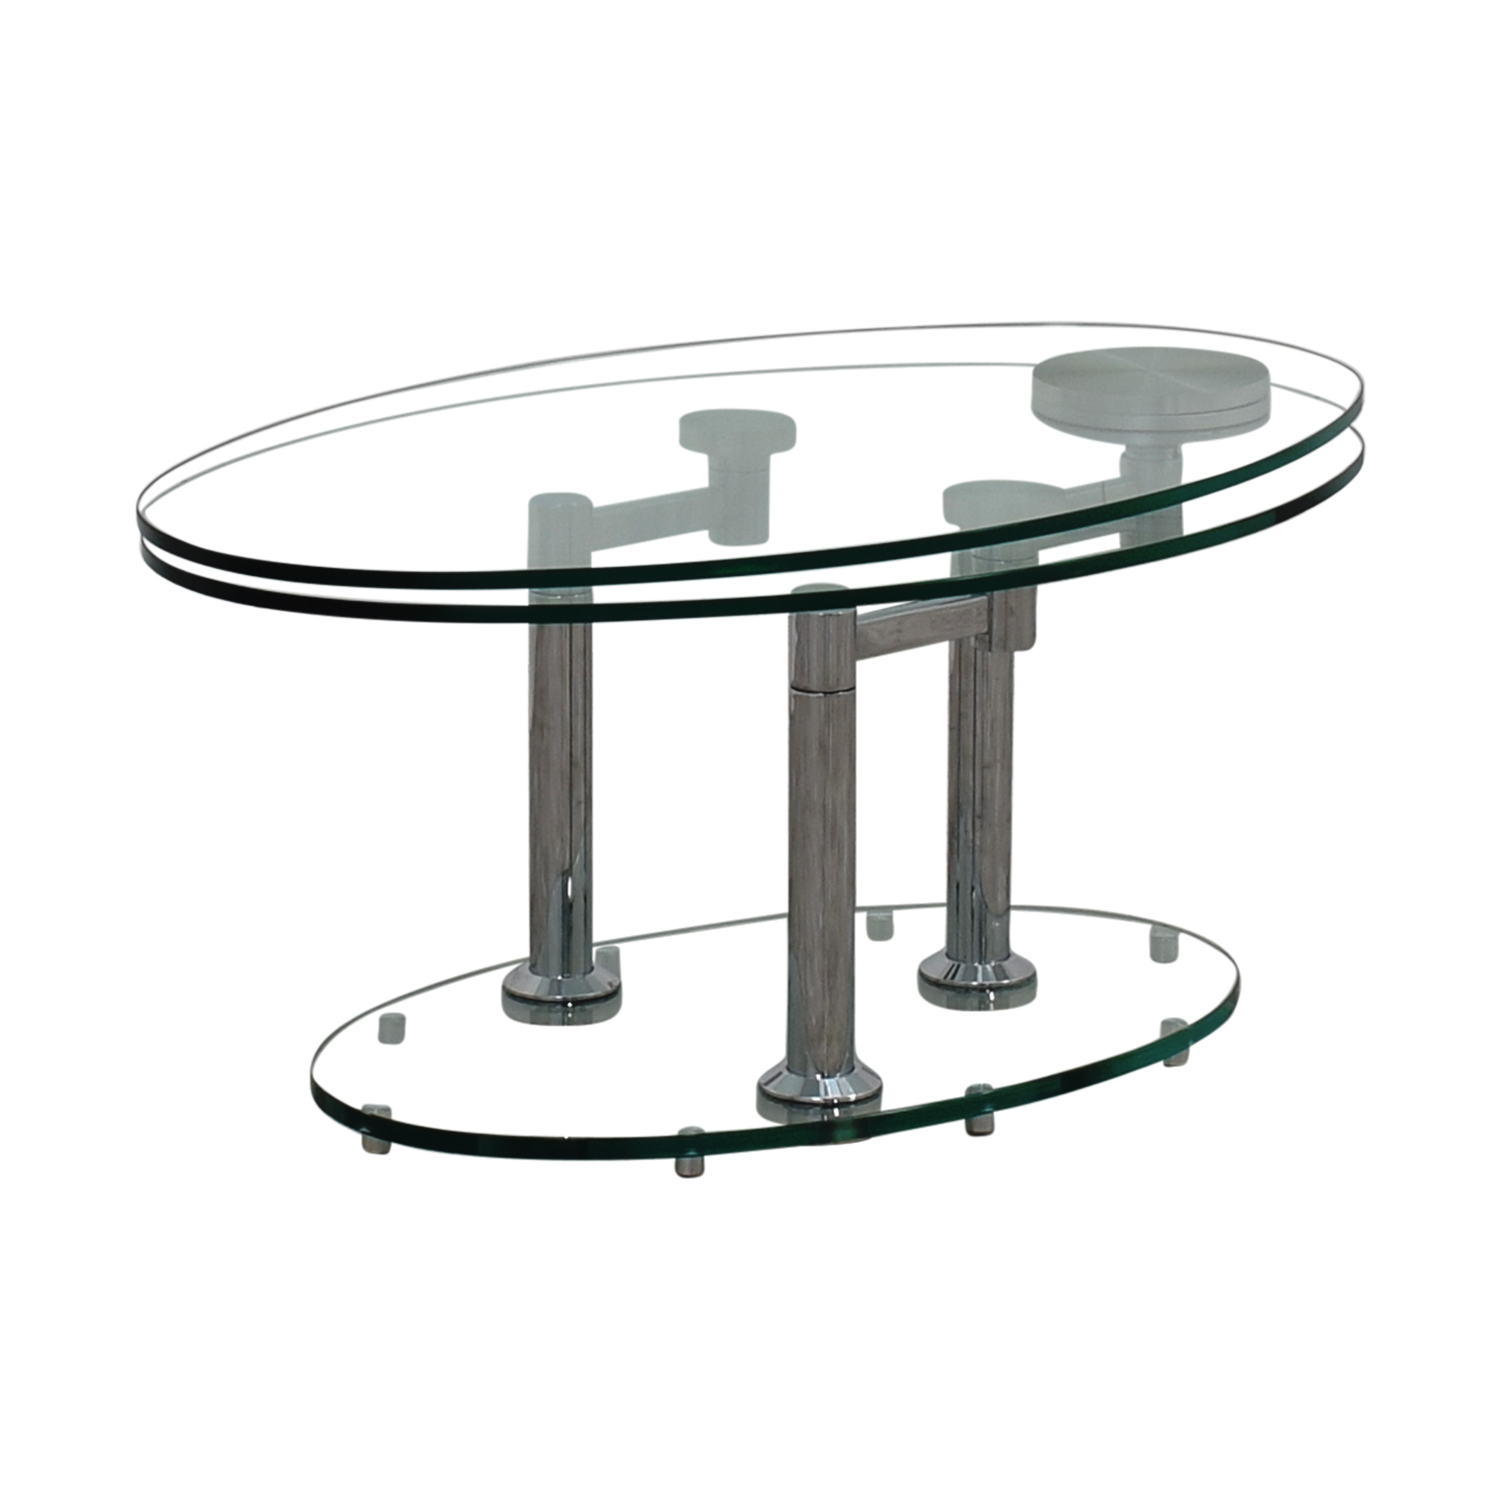 Buy Glass Coffee Table 88 Off Art Deco Movable Oval Glass And Metal Coffee Table